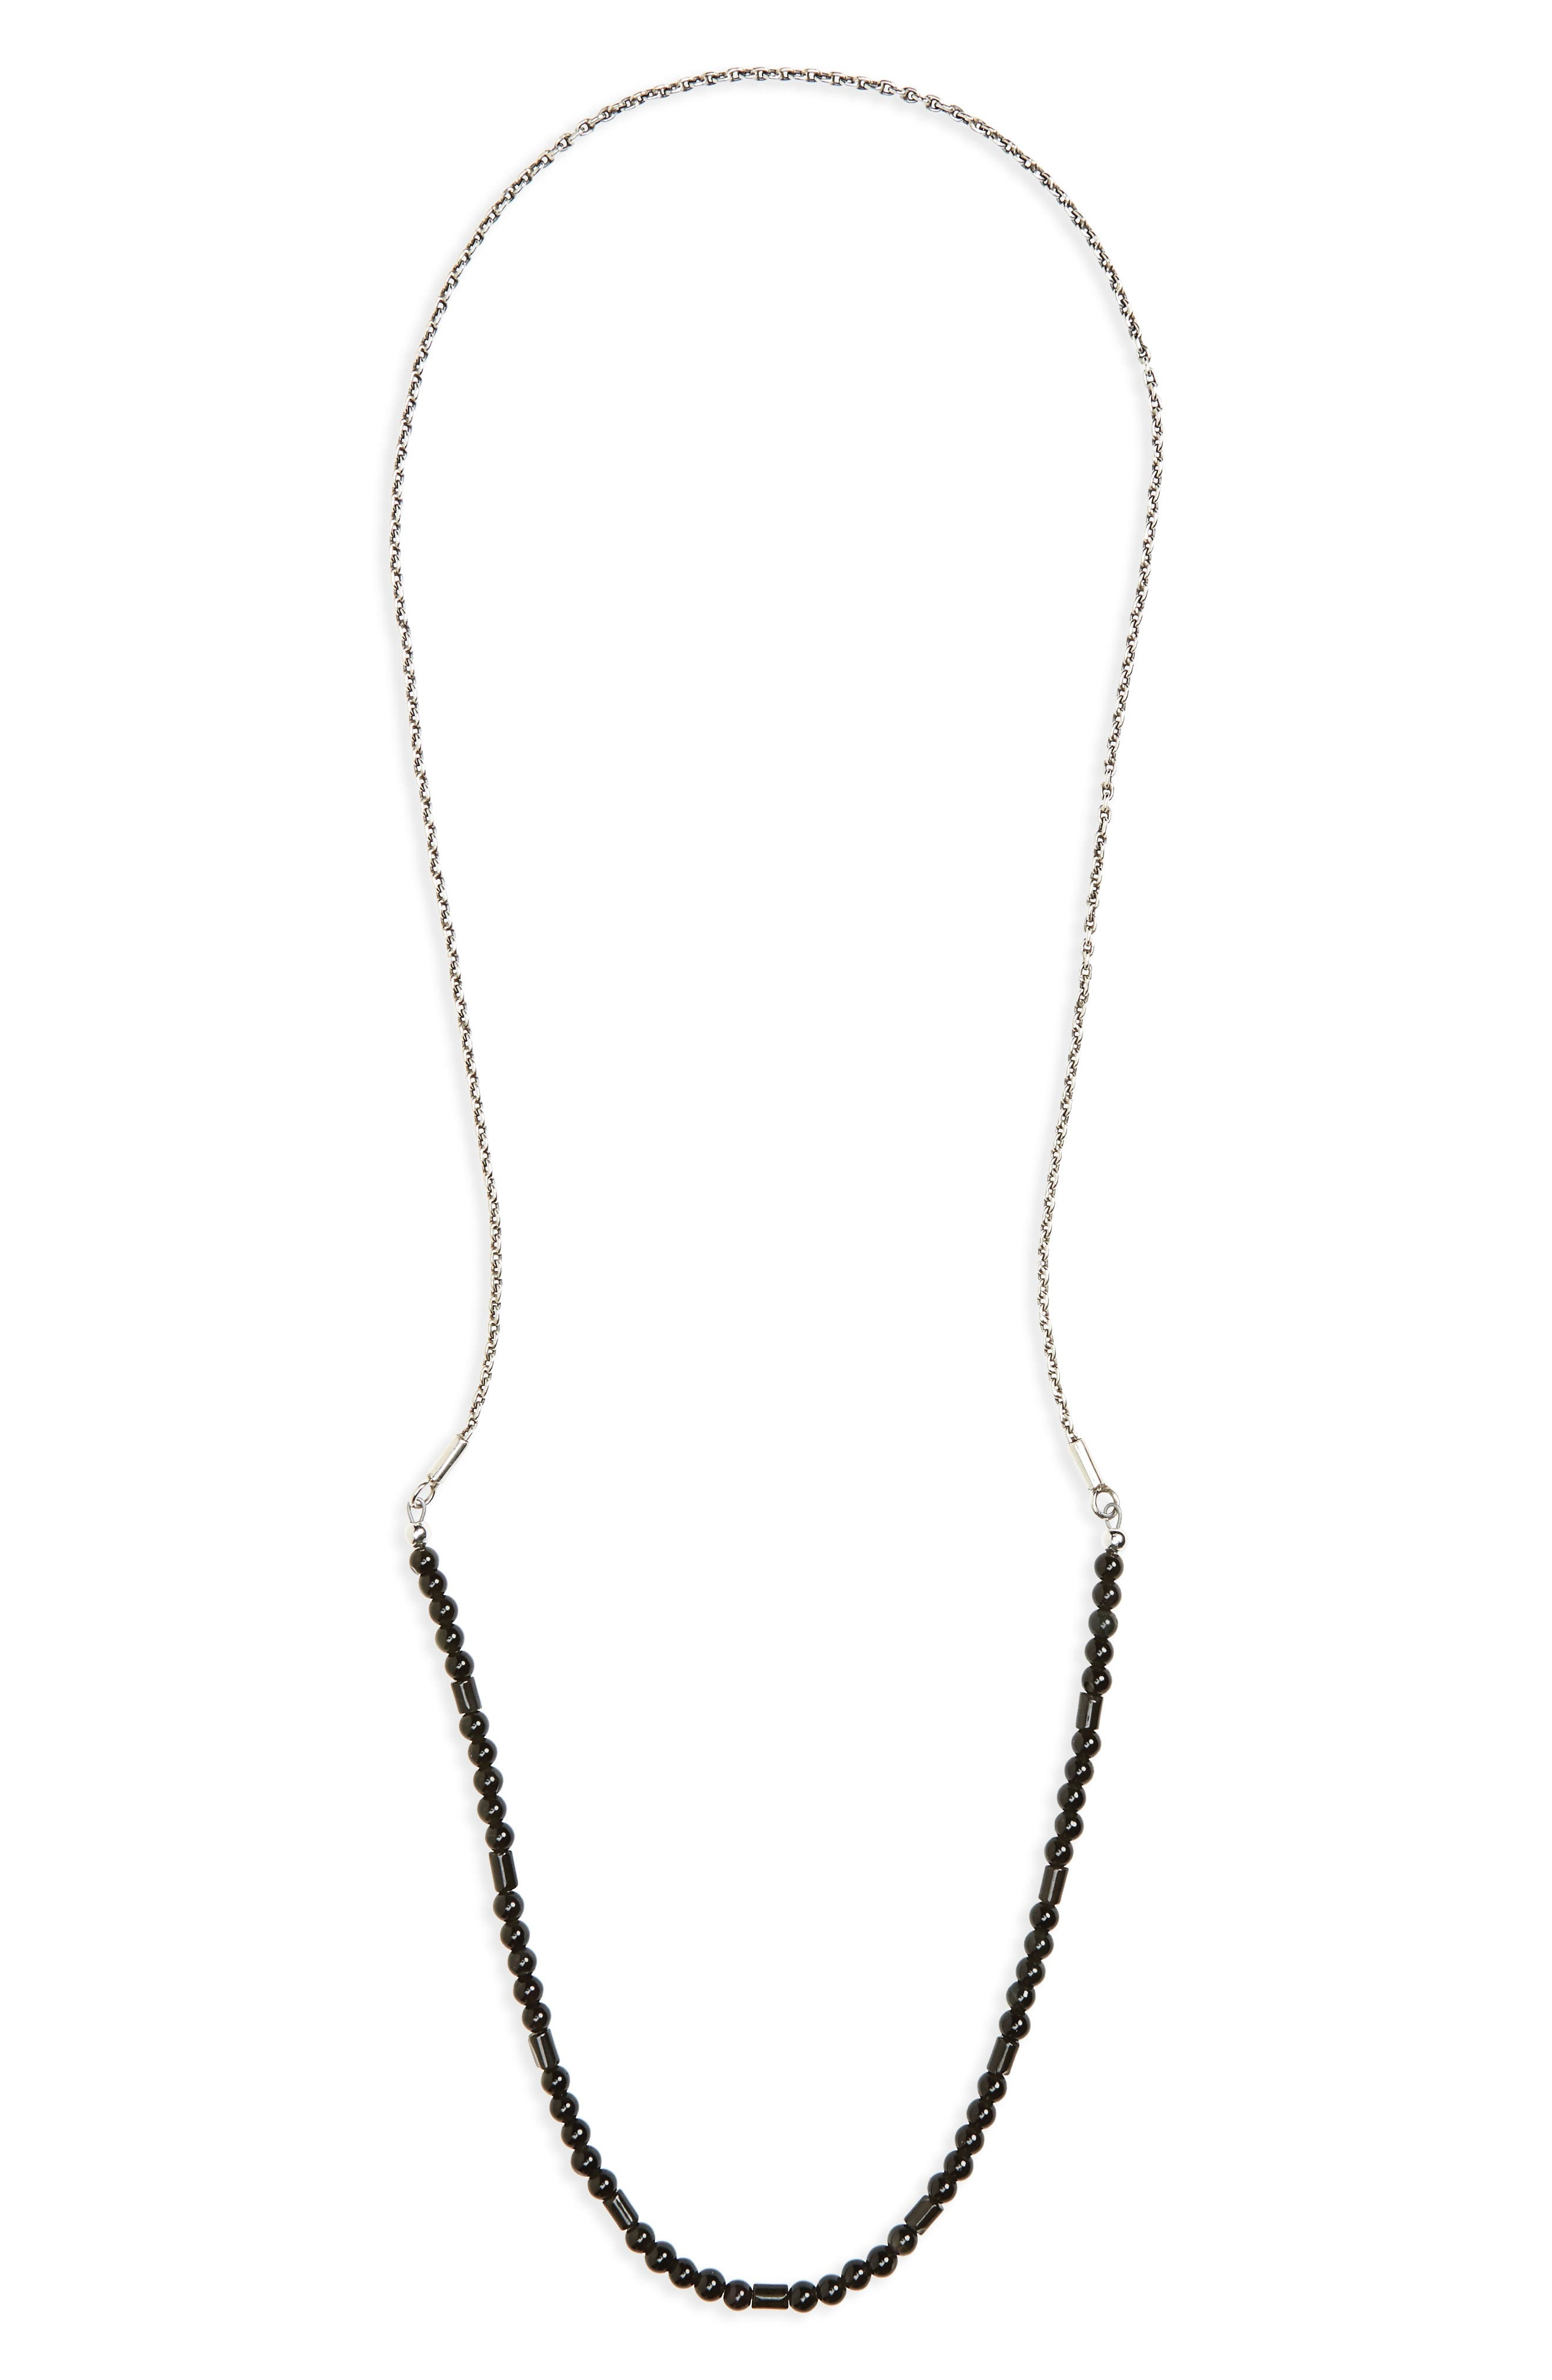 Main Image - Caputo & Co. Sterling Silver & Stone Necklace